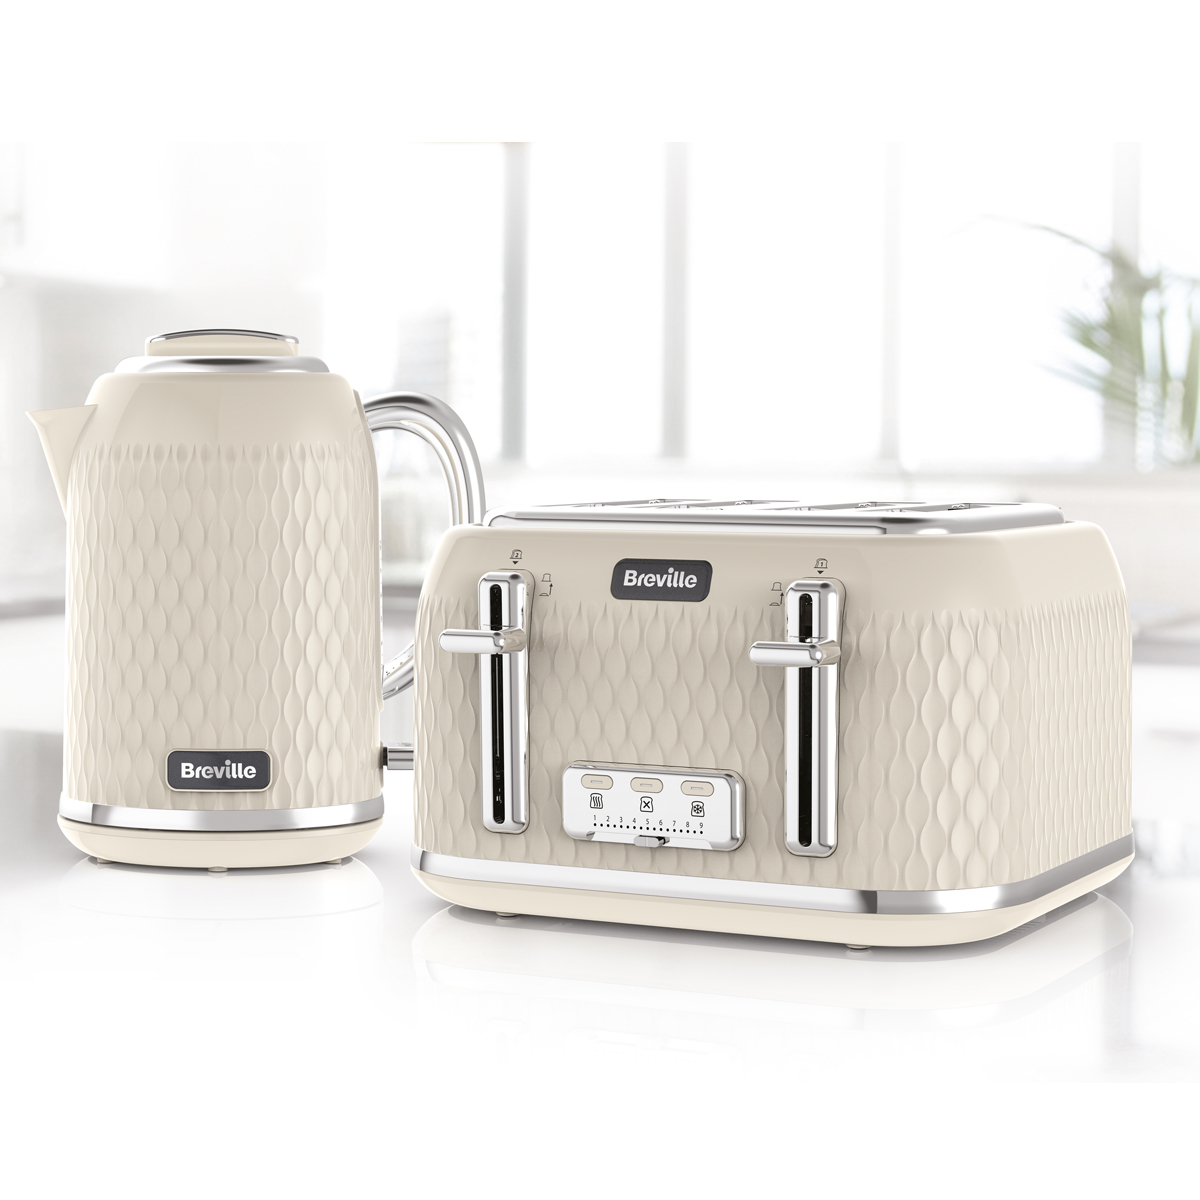 2 Slice Toaster Cream Chrome: Cream Curve Collection 4 Slice Toaster